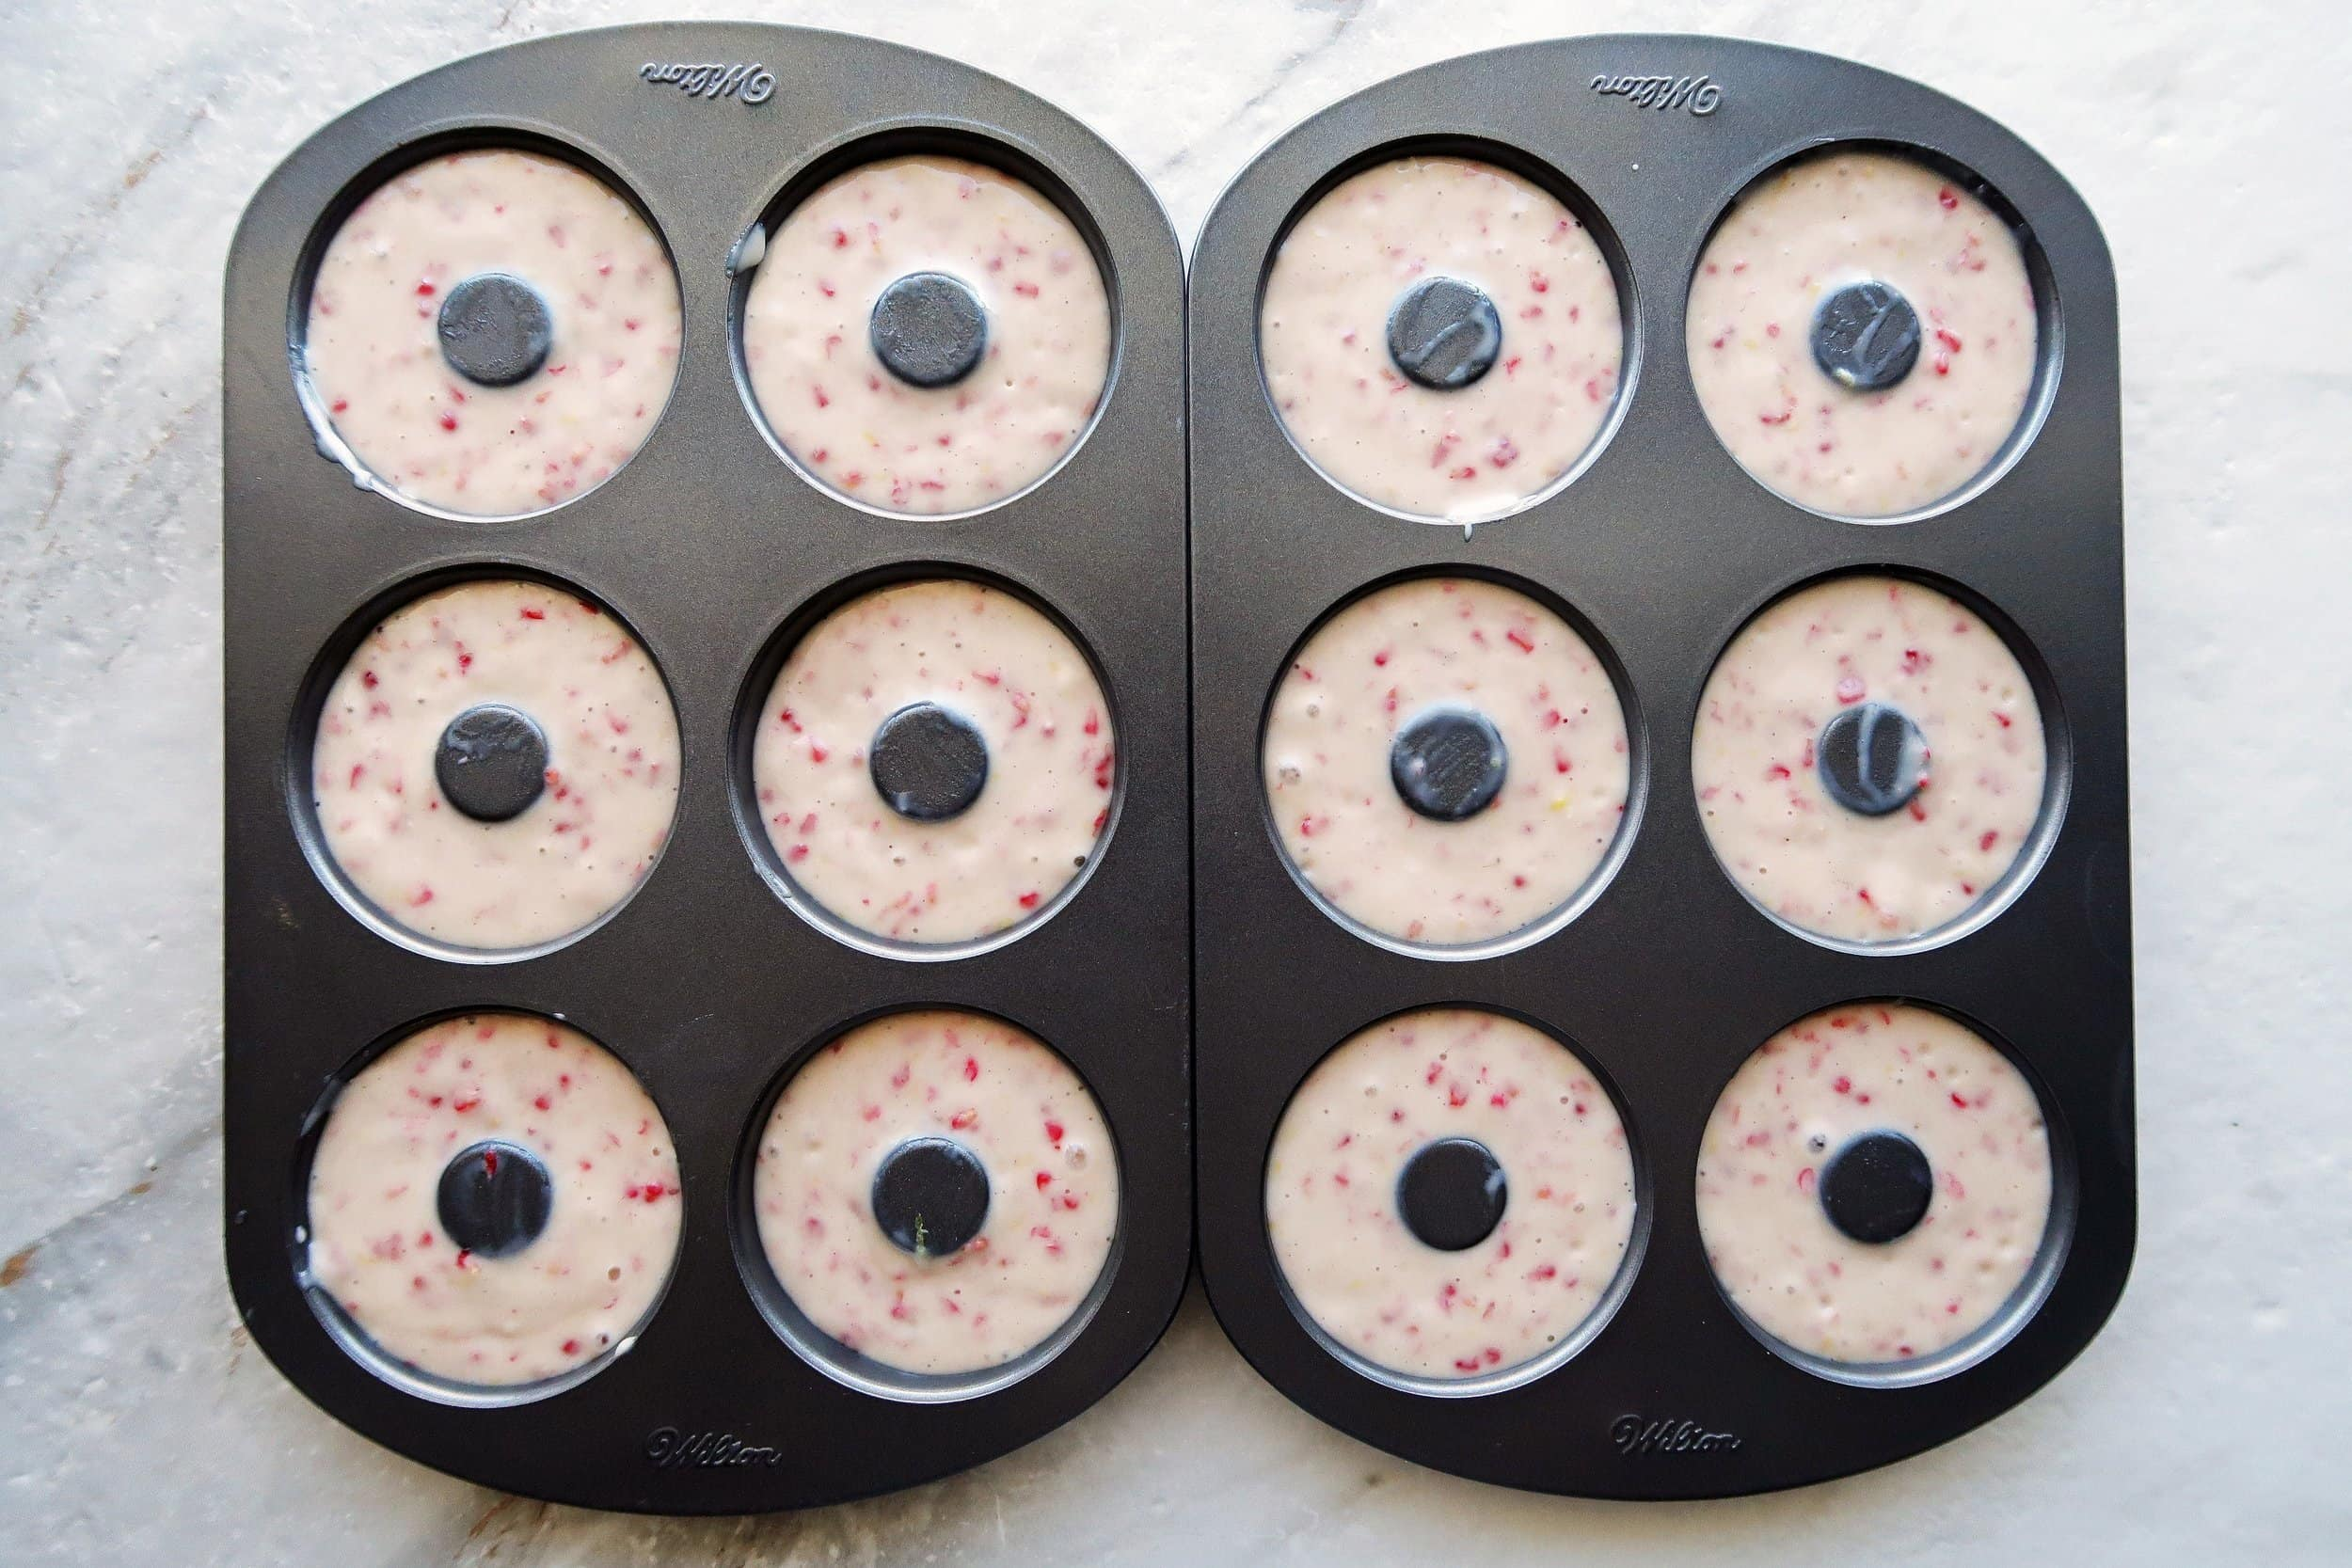 Donut pans filled with raspberry lemon donut batter.